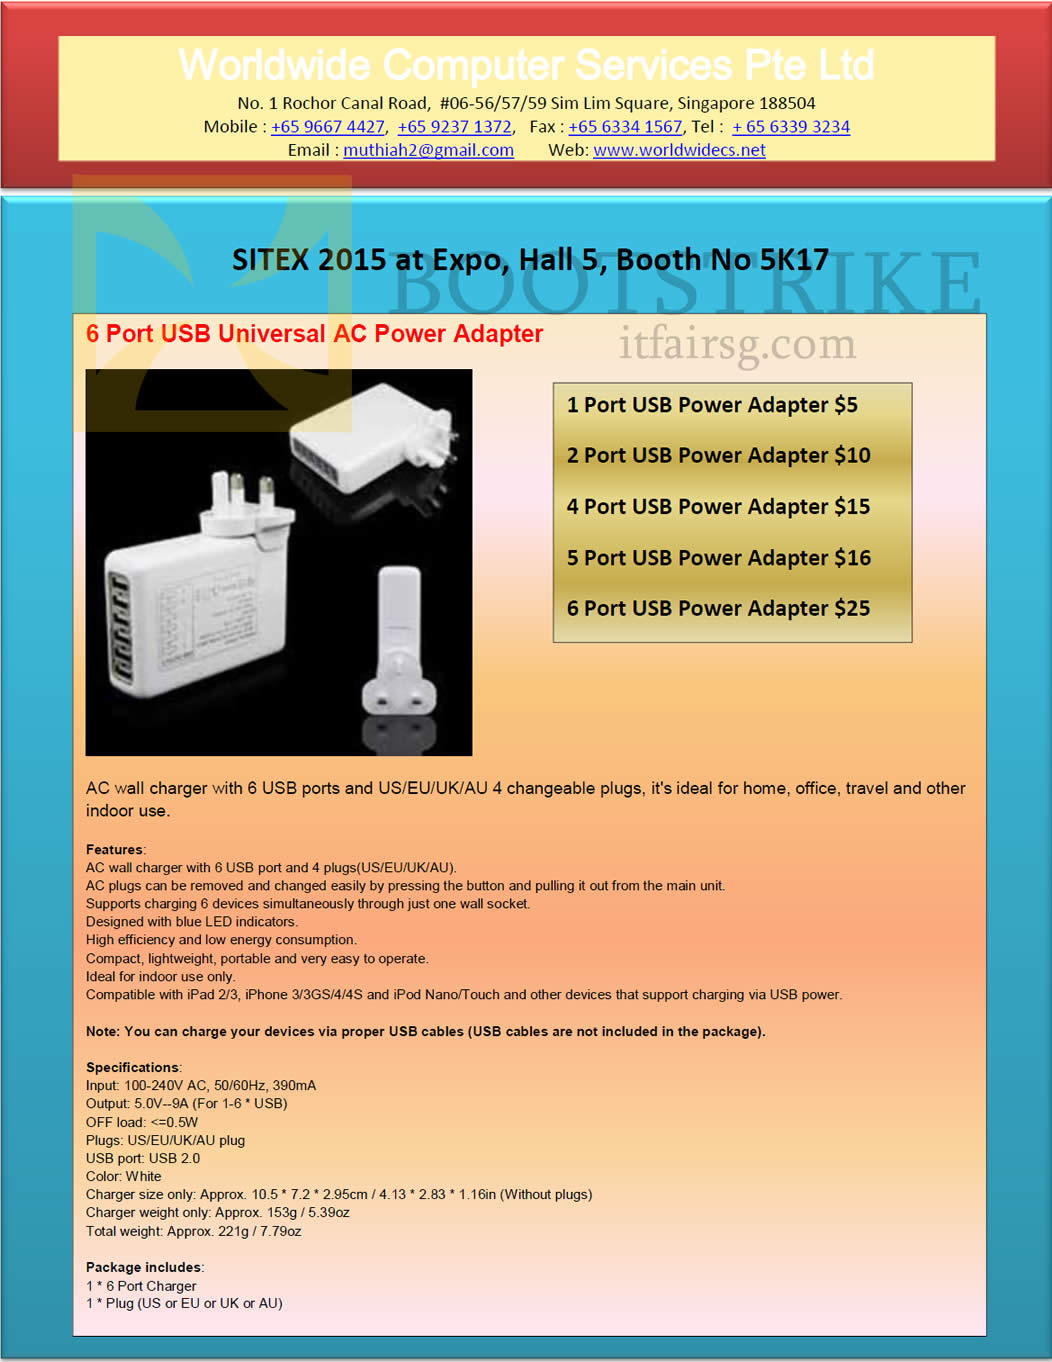 SITEX 2015 price list image brochure of Worldwide Computer Services 6 Port USB Universal AC Power Adapter